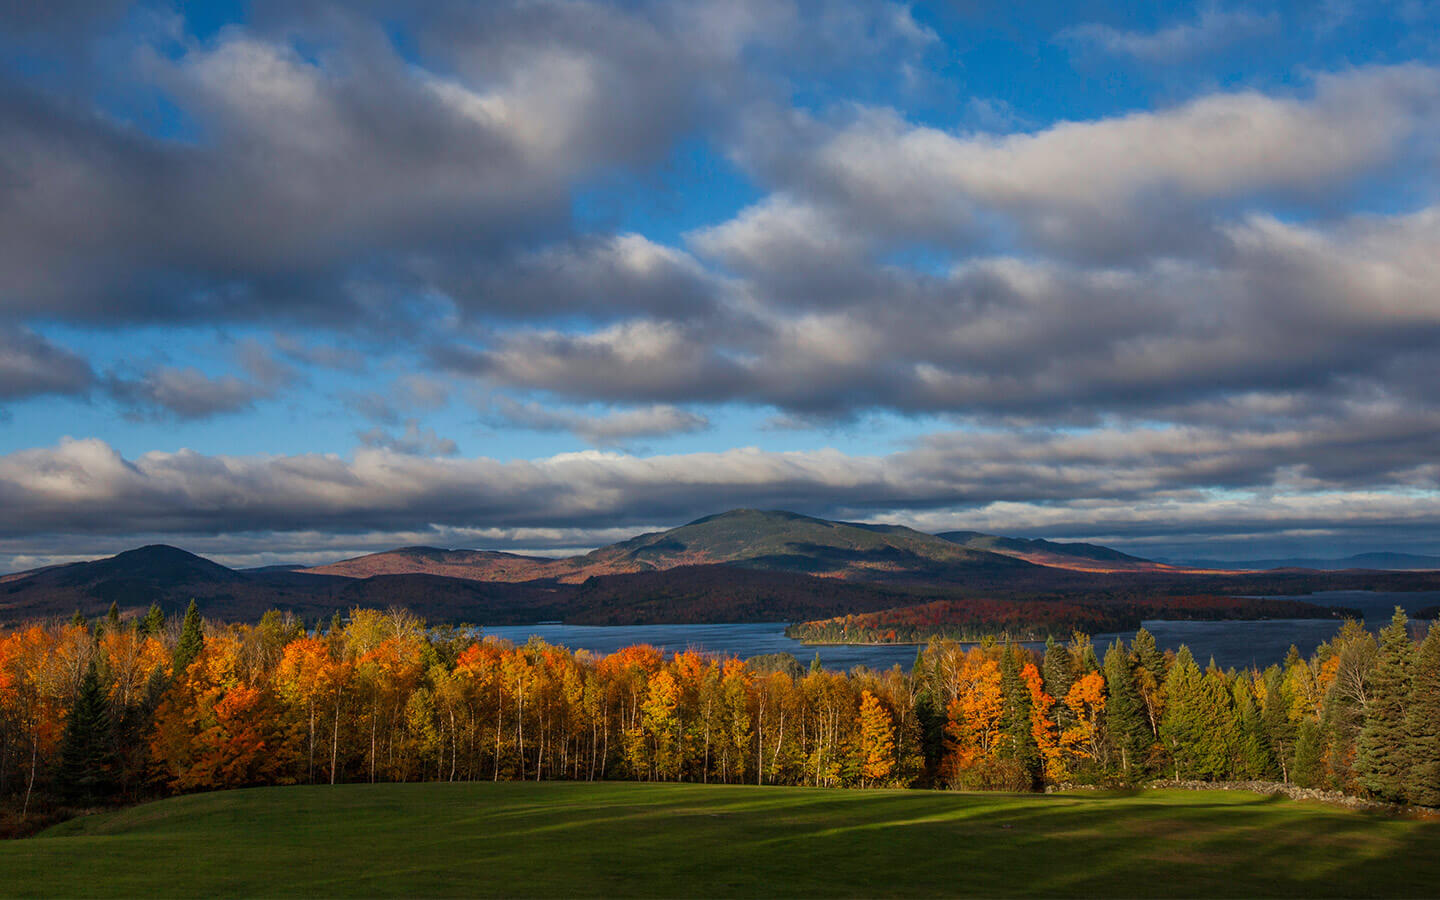 Fall 2017 Wallpaper Vacationing In Maine Fall Foliage Getaway In Maine